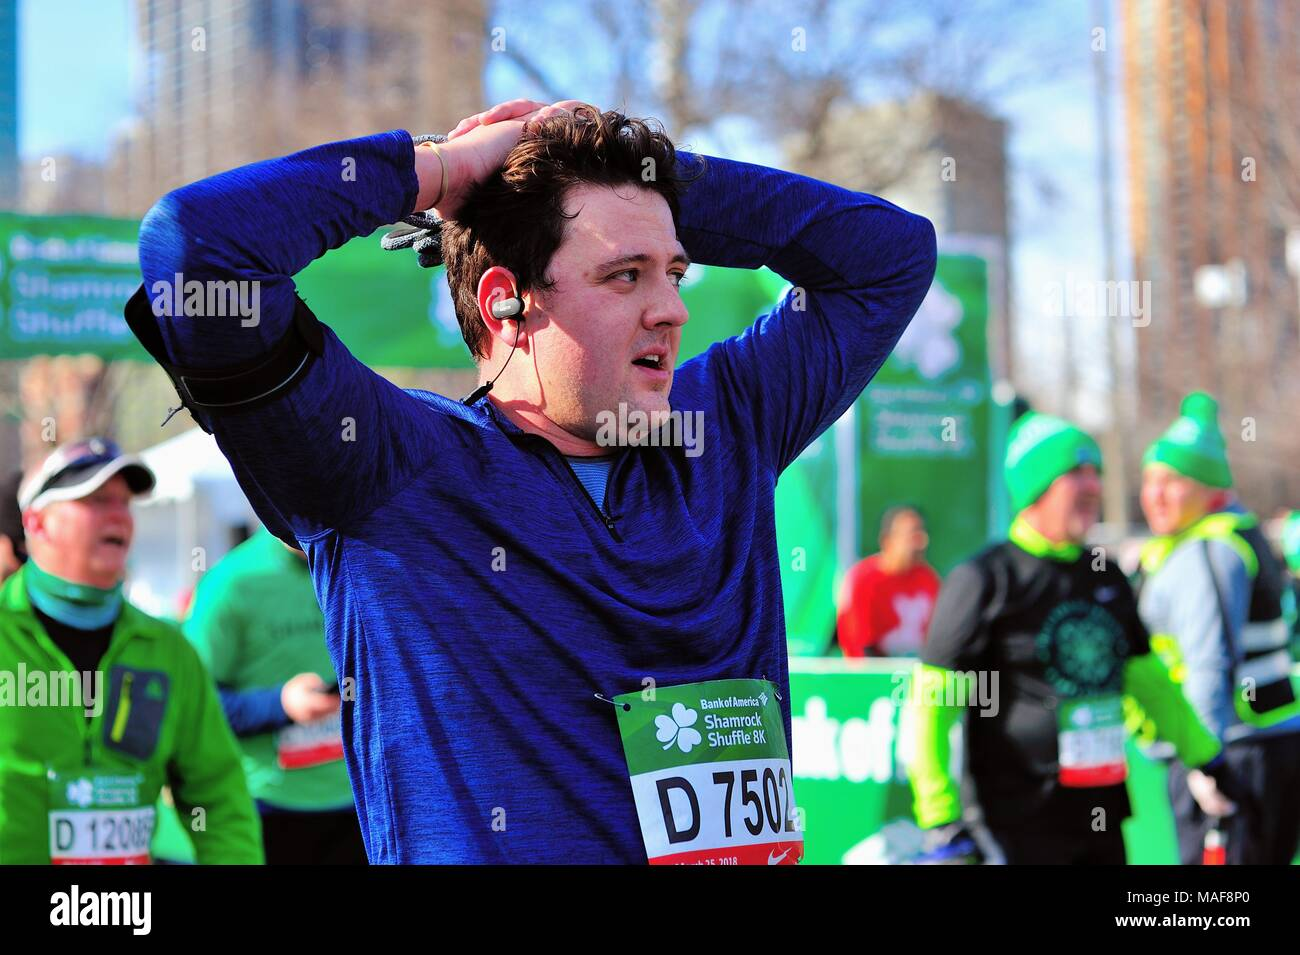 Chicago, Illinois, USA. A tired face of a man just past the finish line at the 2018 Shamrock Shuffle race in Chicago. - Stock Image